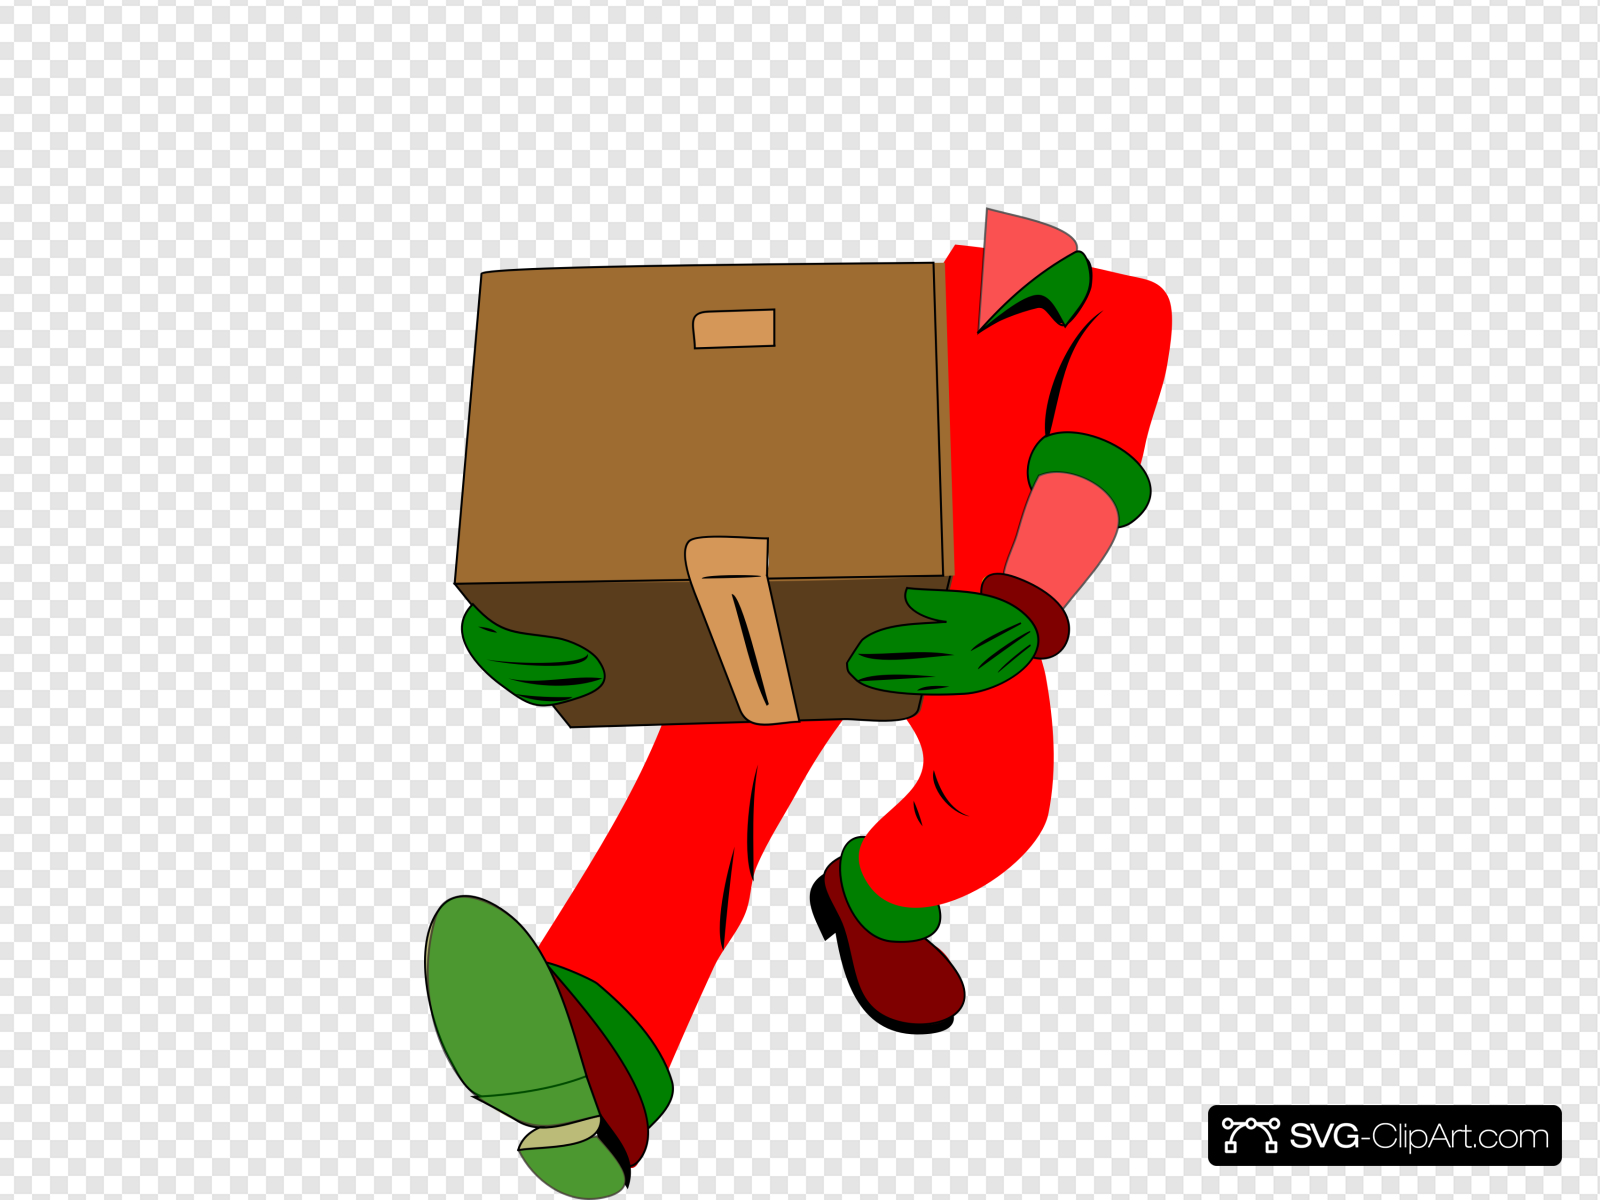 Moving Man Without Head Clip art, Icon and SVG.